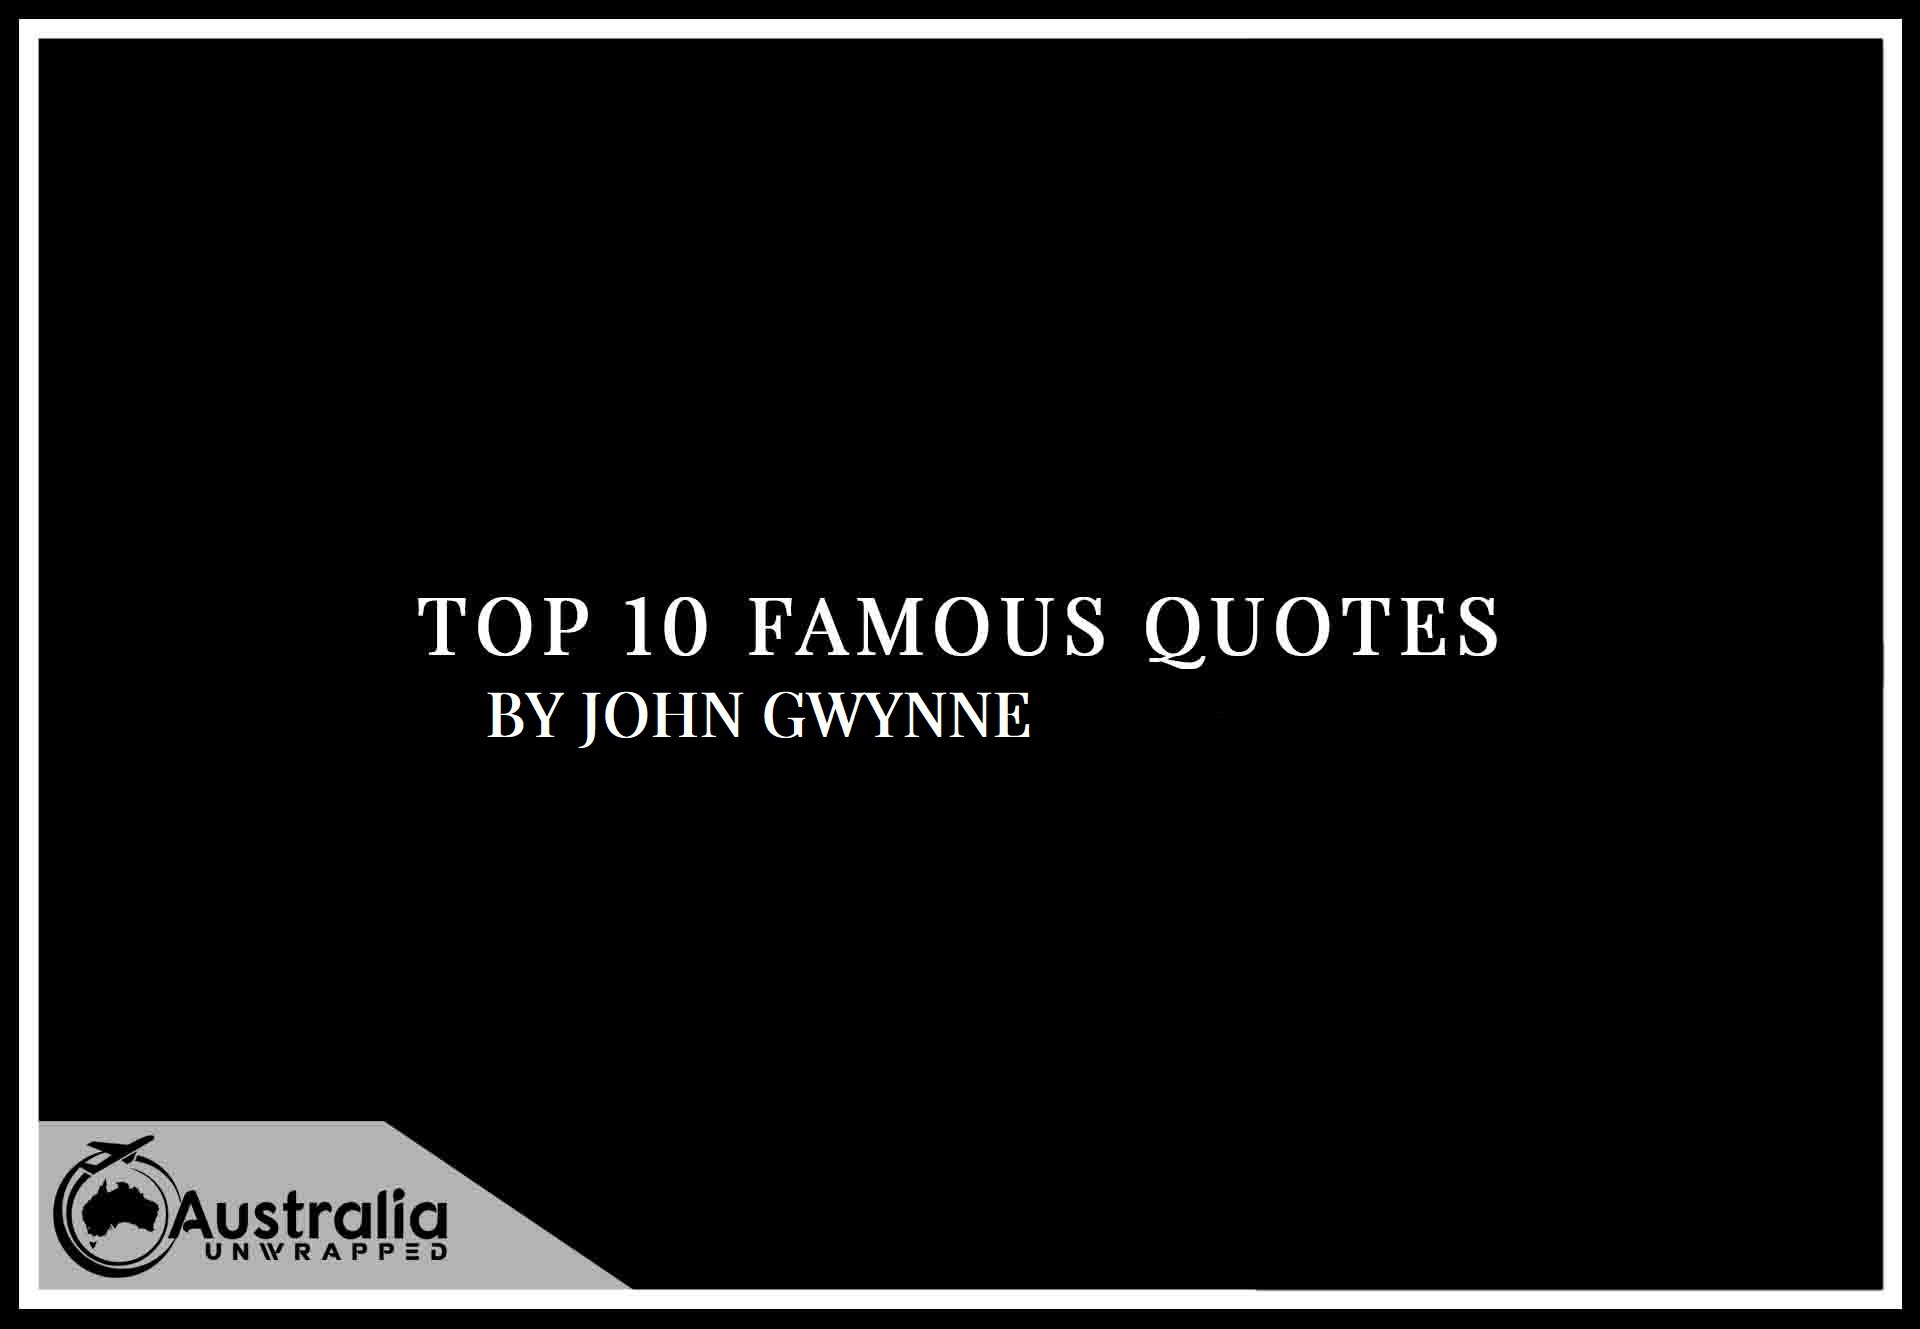 Top 10 Famous Quotes by Author John Gwynne